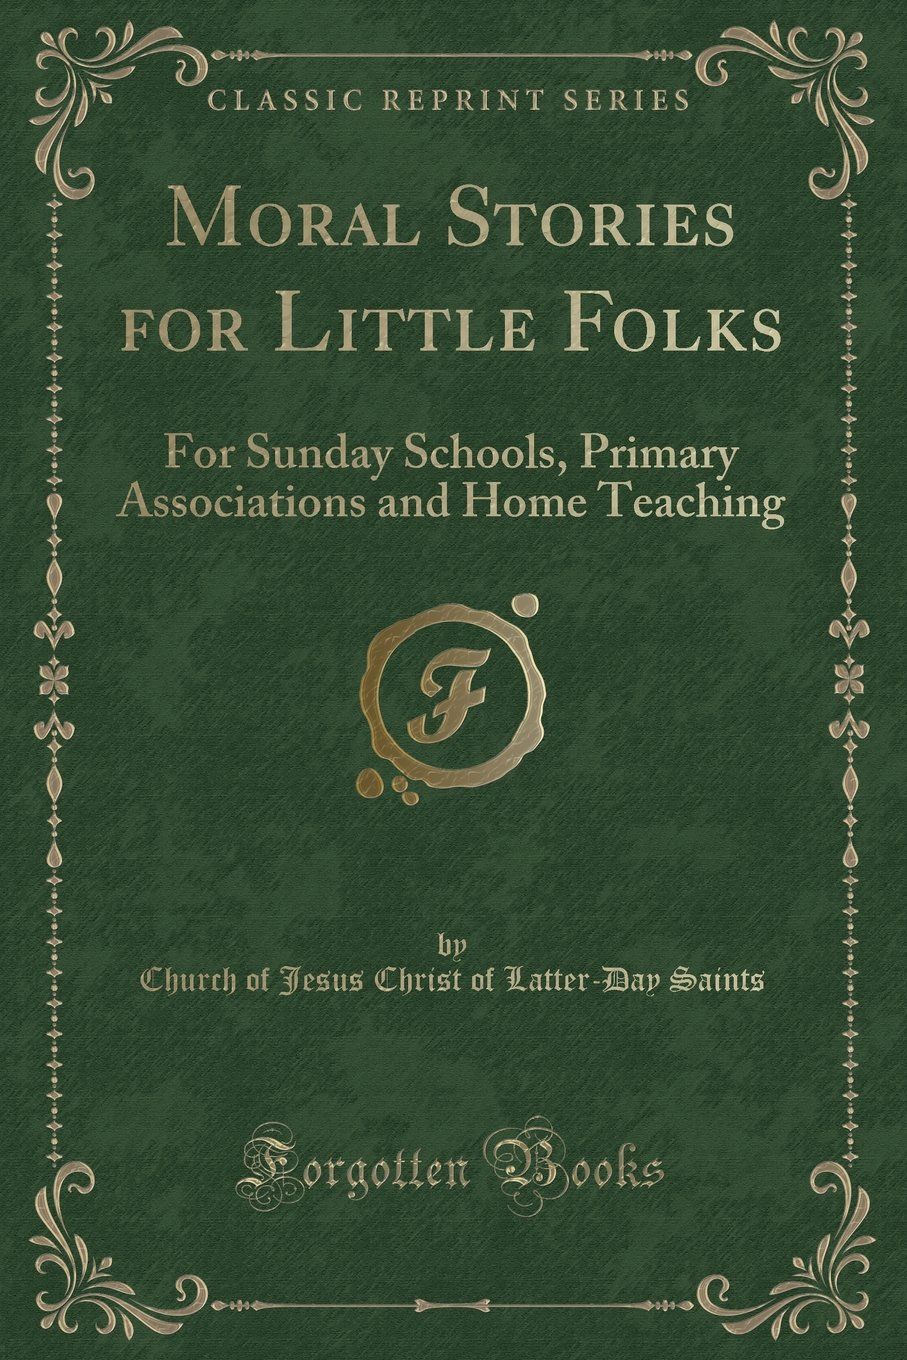 Moral Stories for Little Folks: For Sunday Schools, Primary Associations and Home Teaching (Classic Reprint) ebook